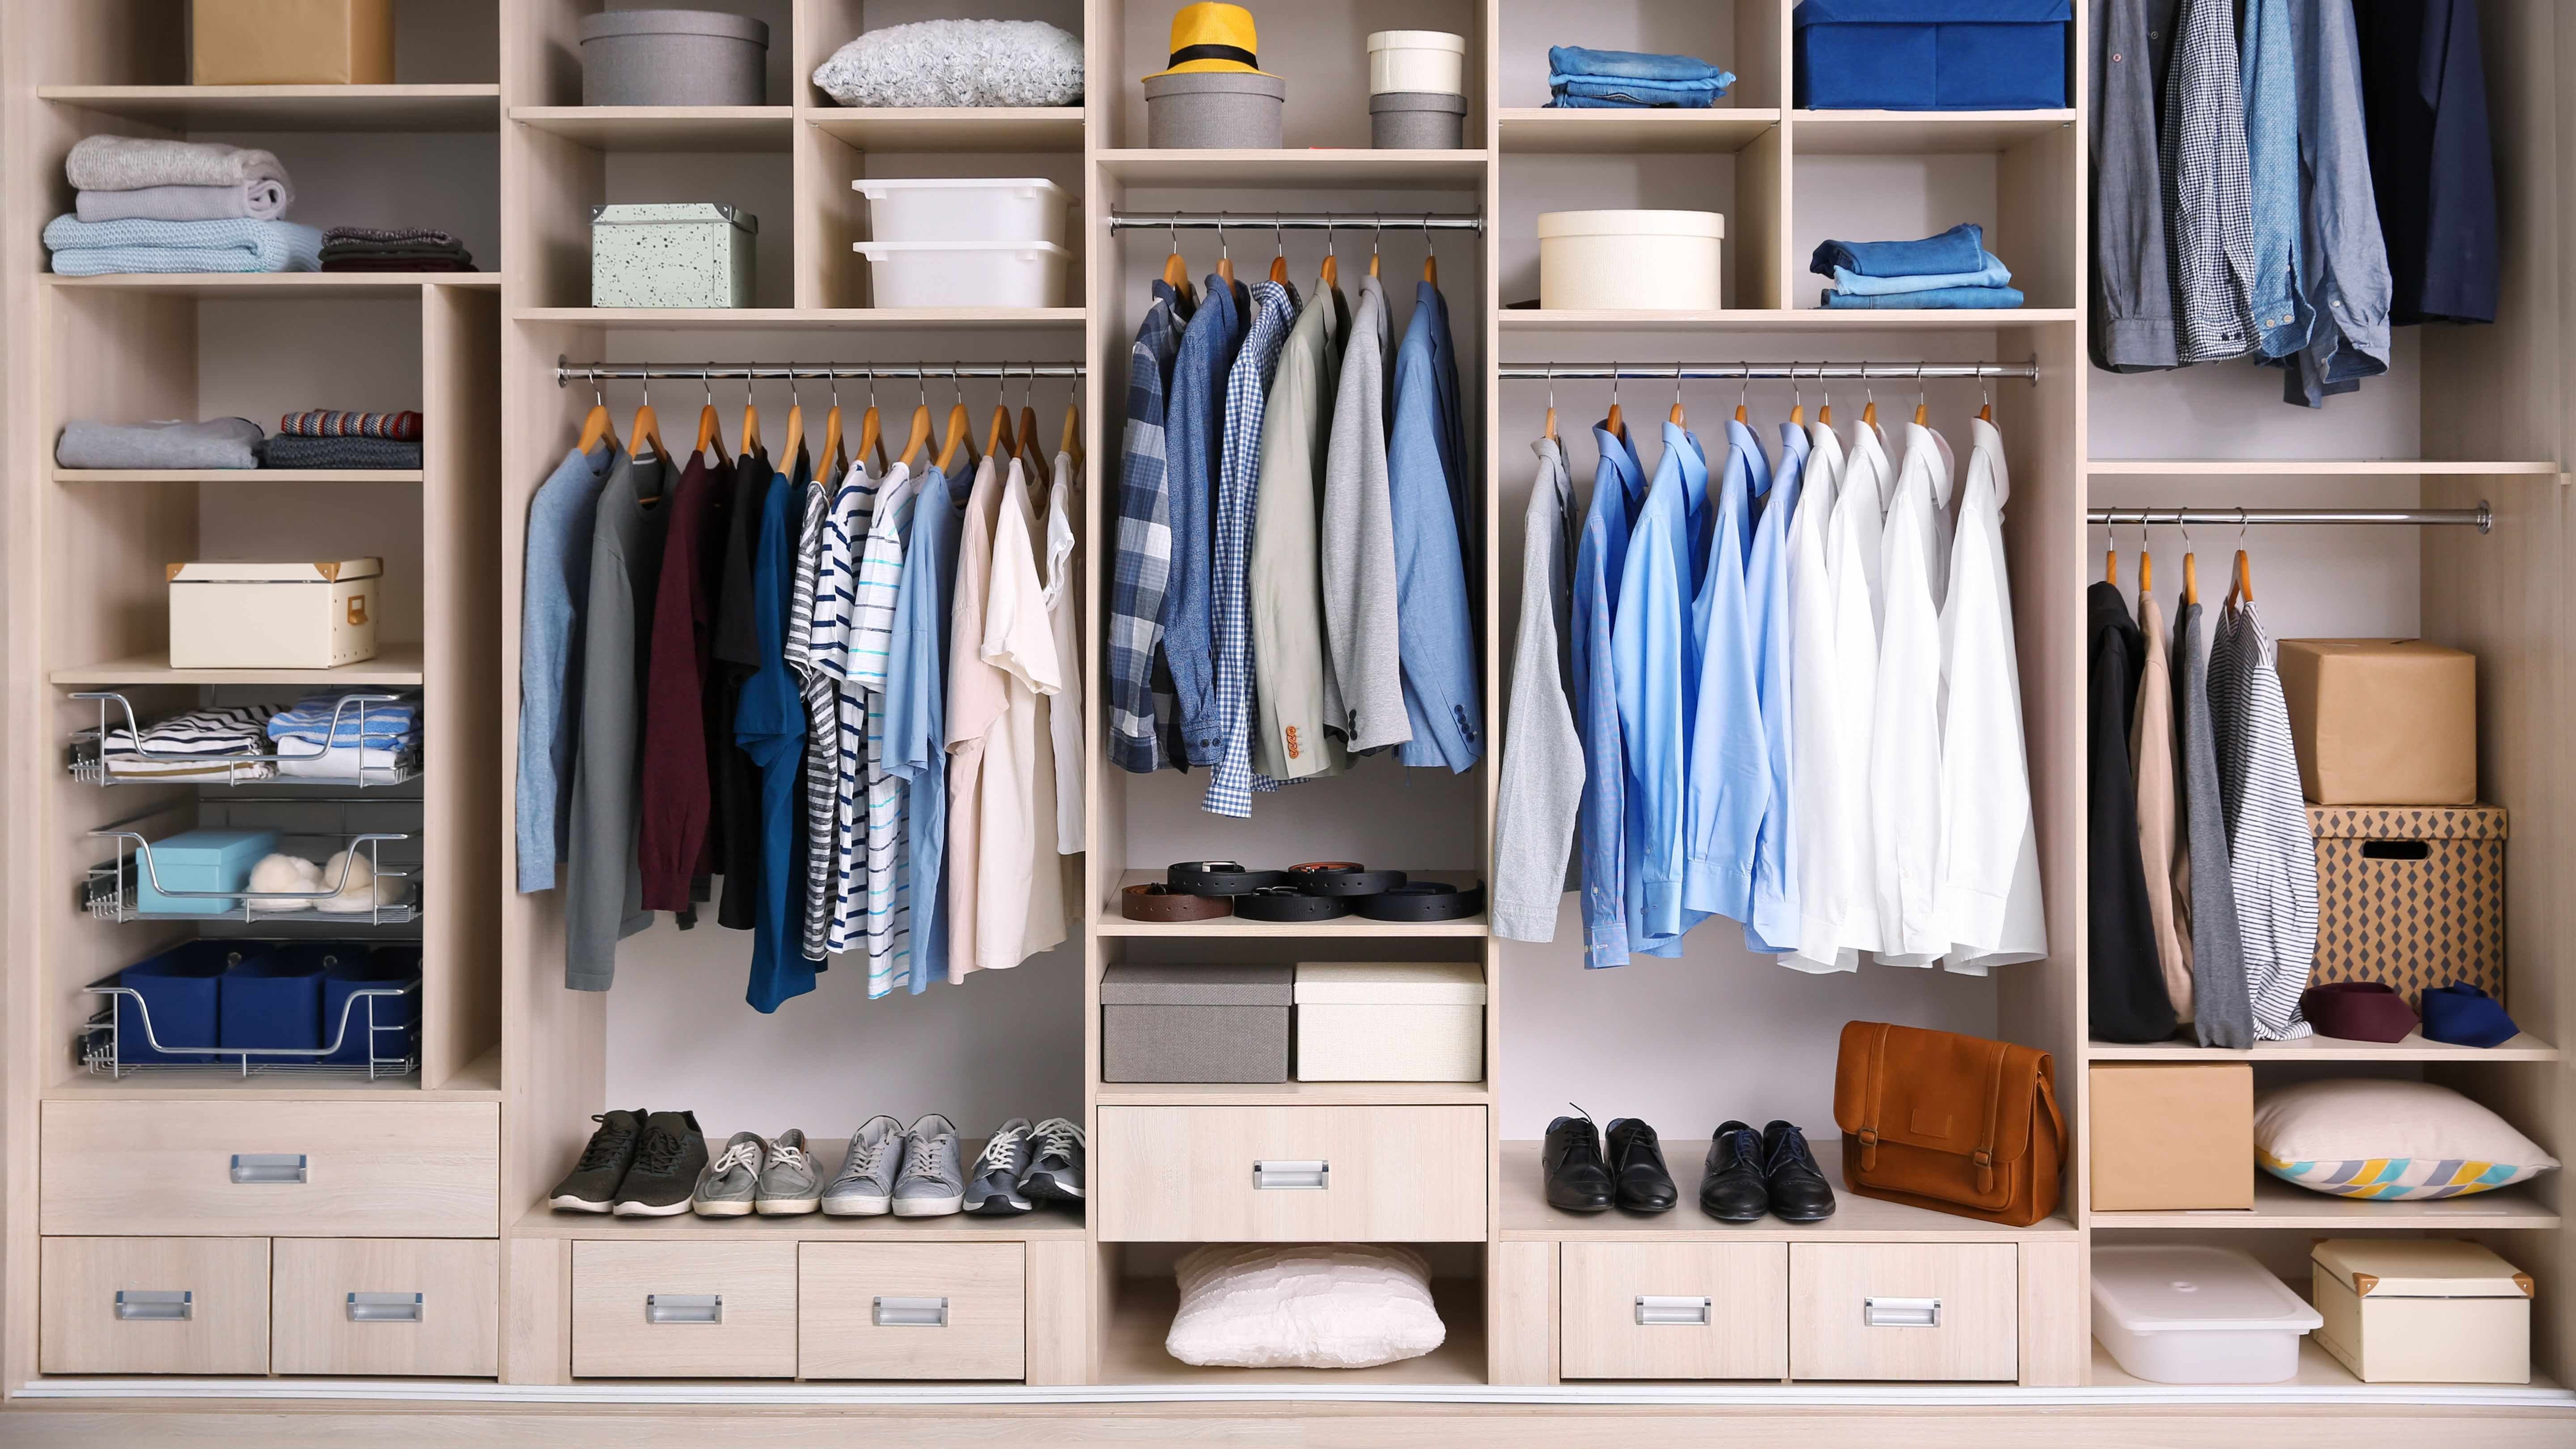 How to create a walk-in wardrobe on a budget